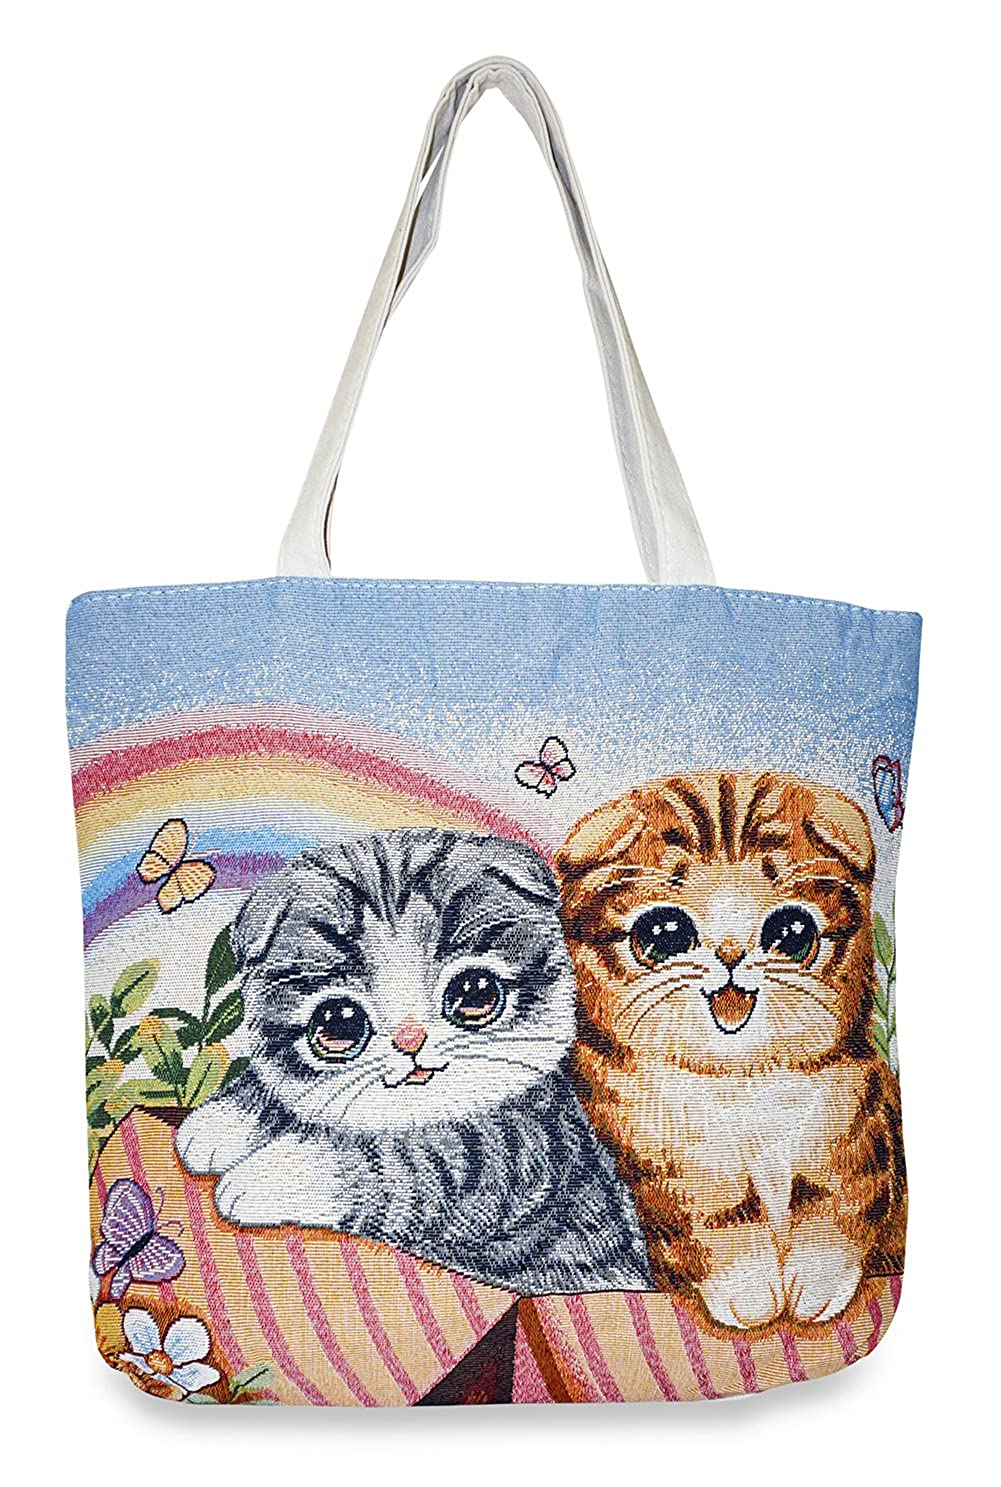 5e3e24d739 Amazon.com | Cat Tapestry Tote Bag X-Large, Rainbow Multicolor | Travel  Totes